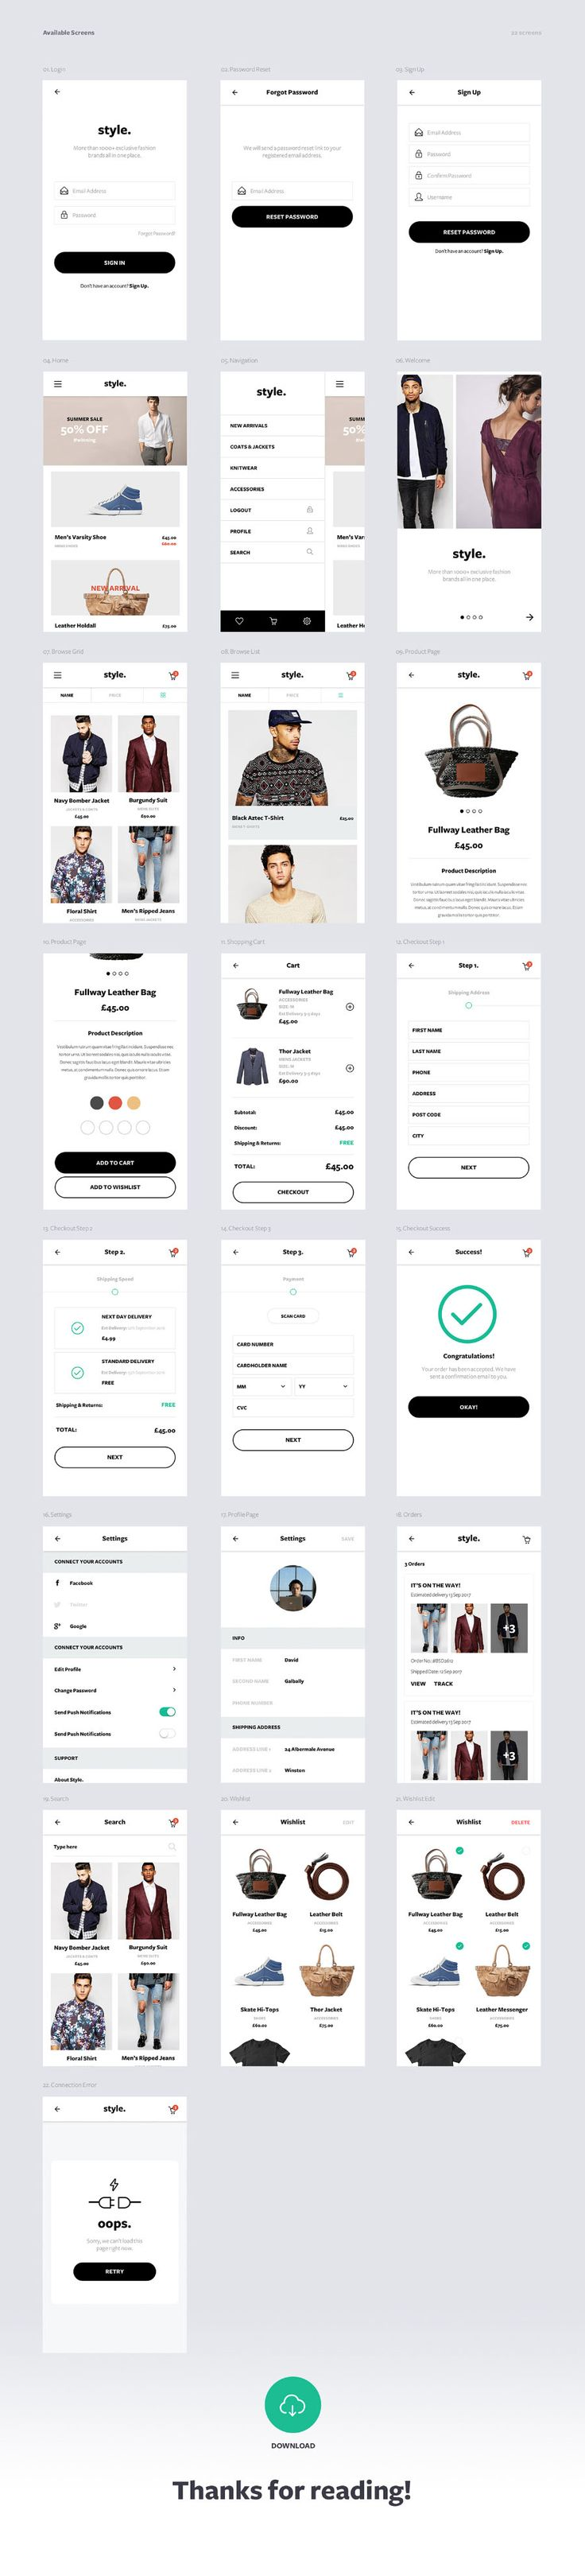 Beautiful UI Kit, and it's free to use! Style Free ECommerce UI Kit - Free Design Resources